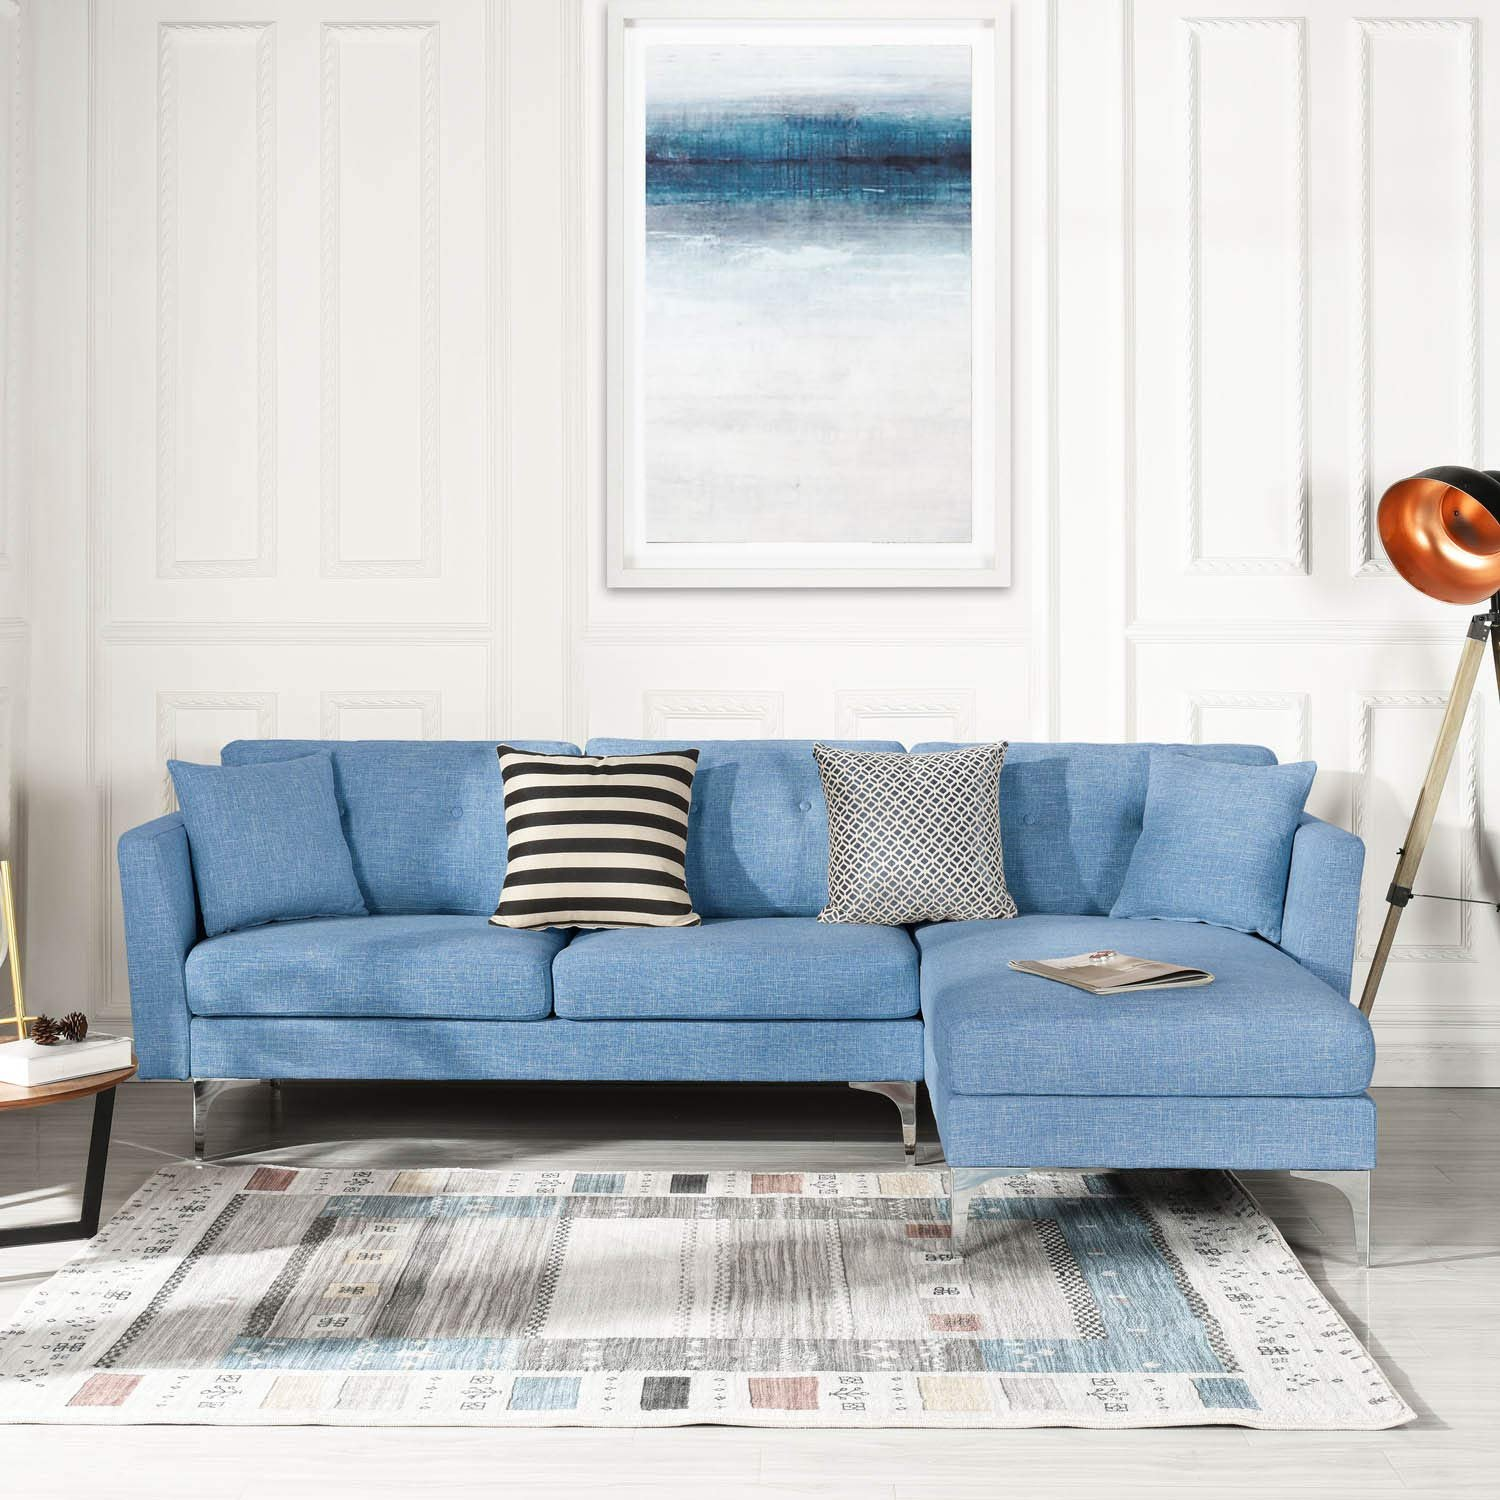 Details about Blue Upholstered Linen Sectional Sofa Couch Modern L-Shape  Sectional Couch